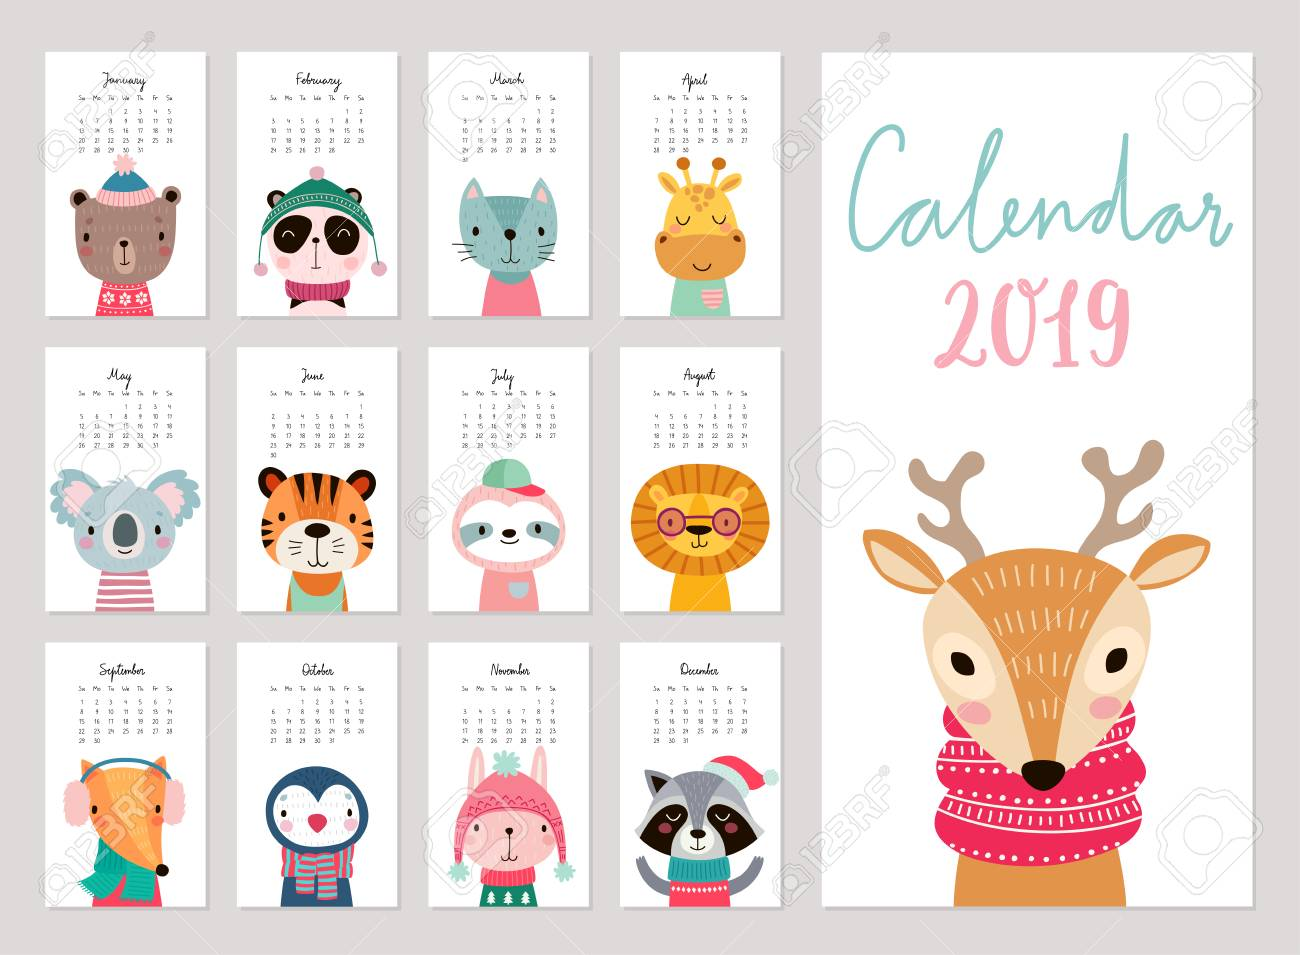 Animal 2019 Calendar Calendar 2019. Cute Monthly Calendar With Animals. Hand Drawn